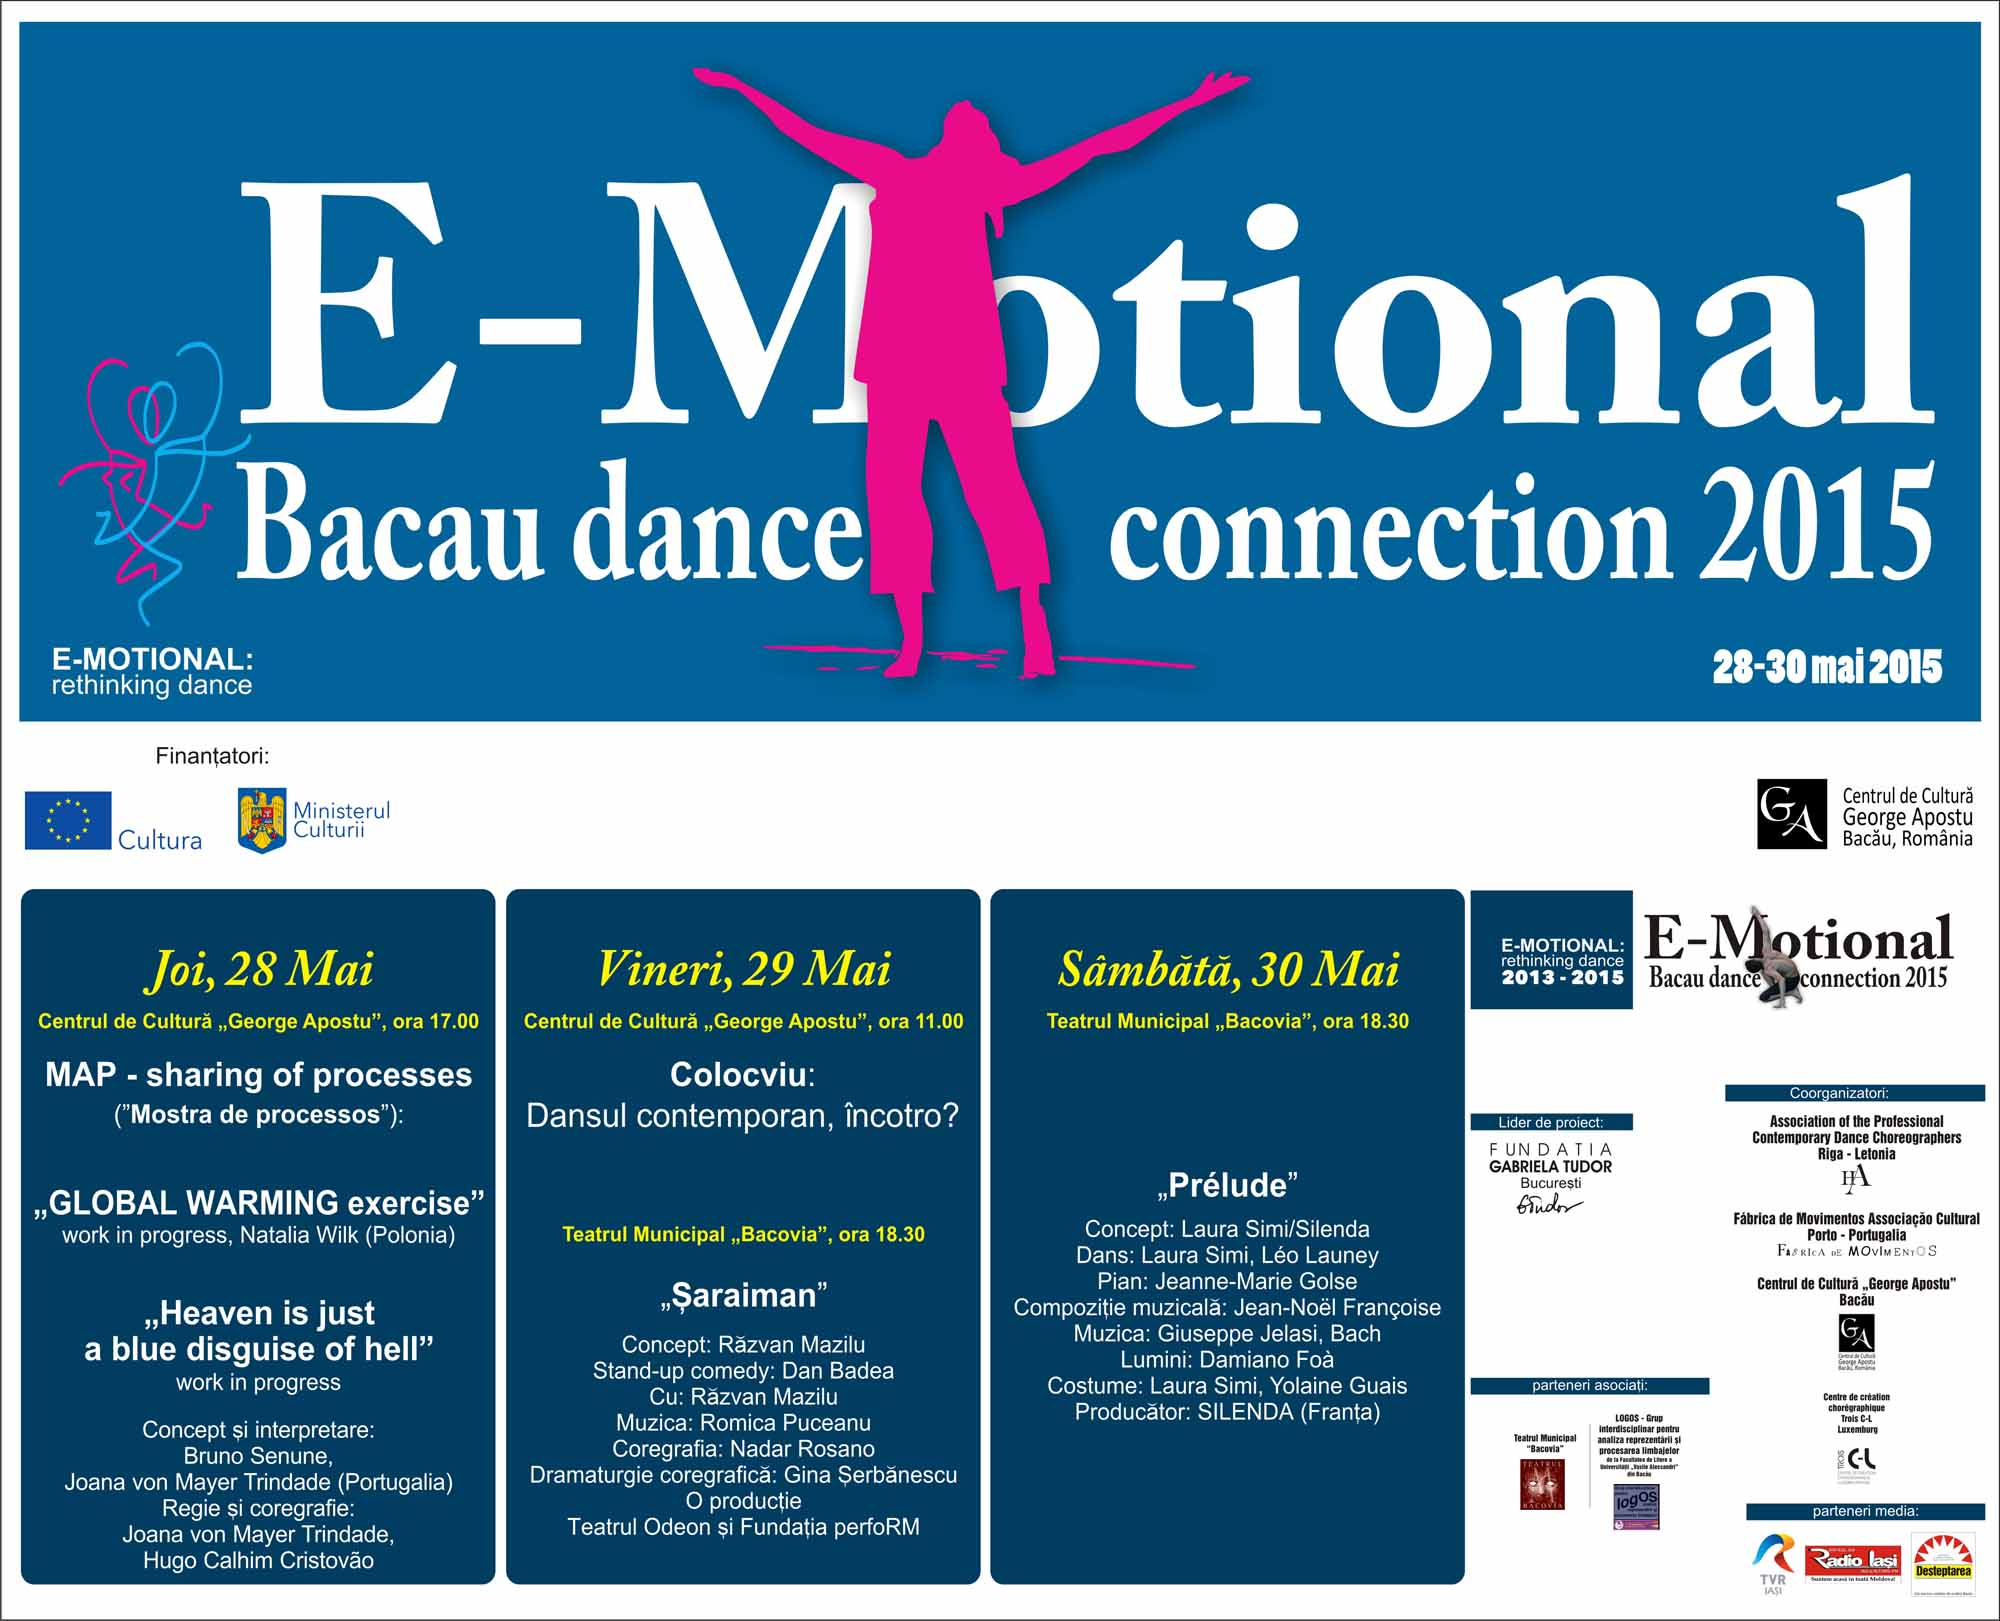 E-motional, Bacau dance connection 2015